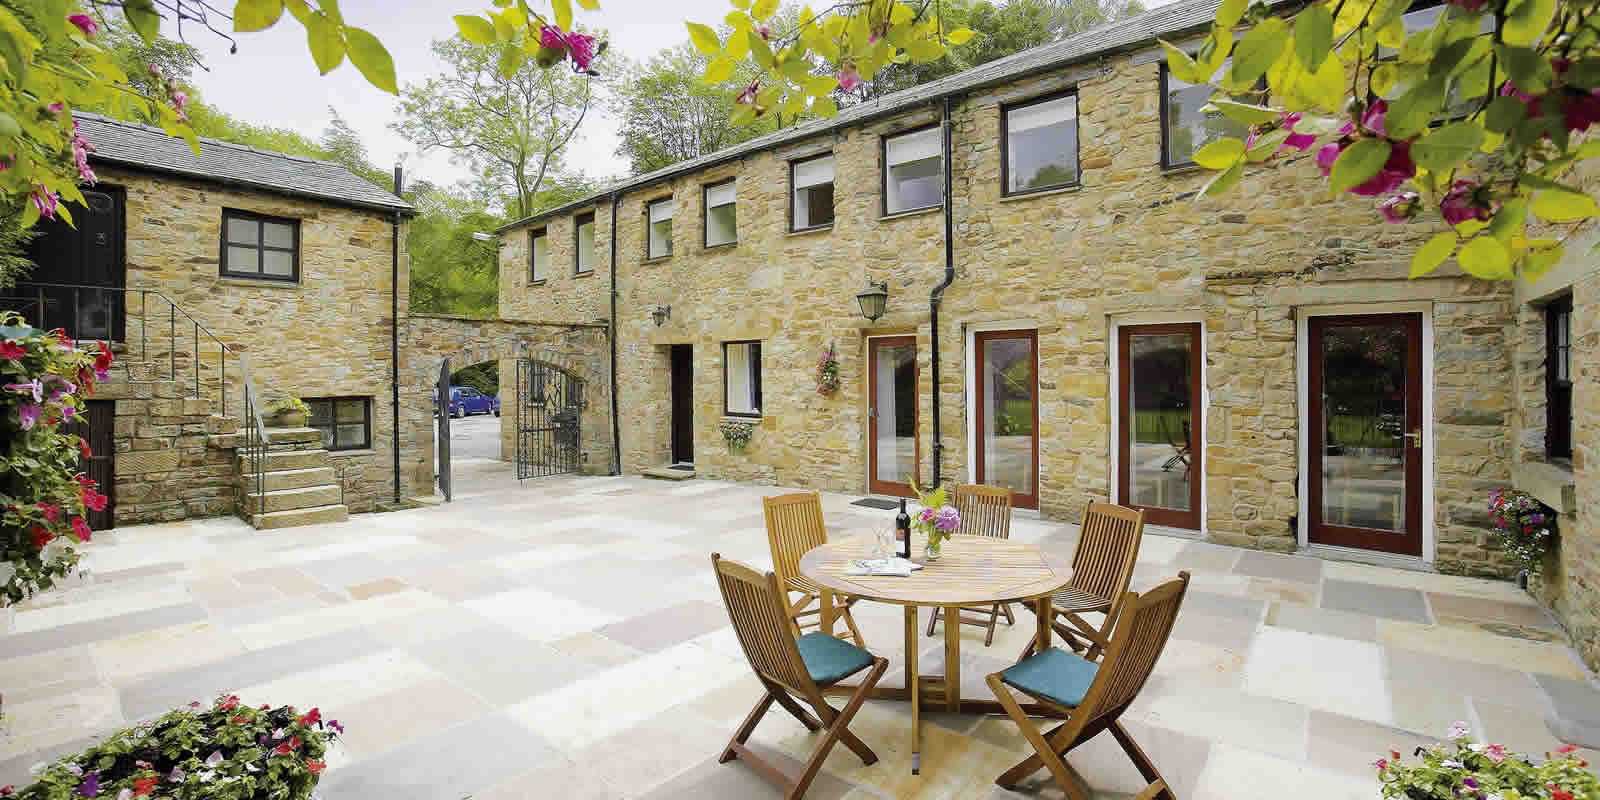 Self catering in the Ribble Valley